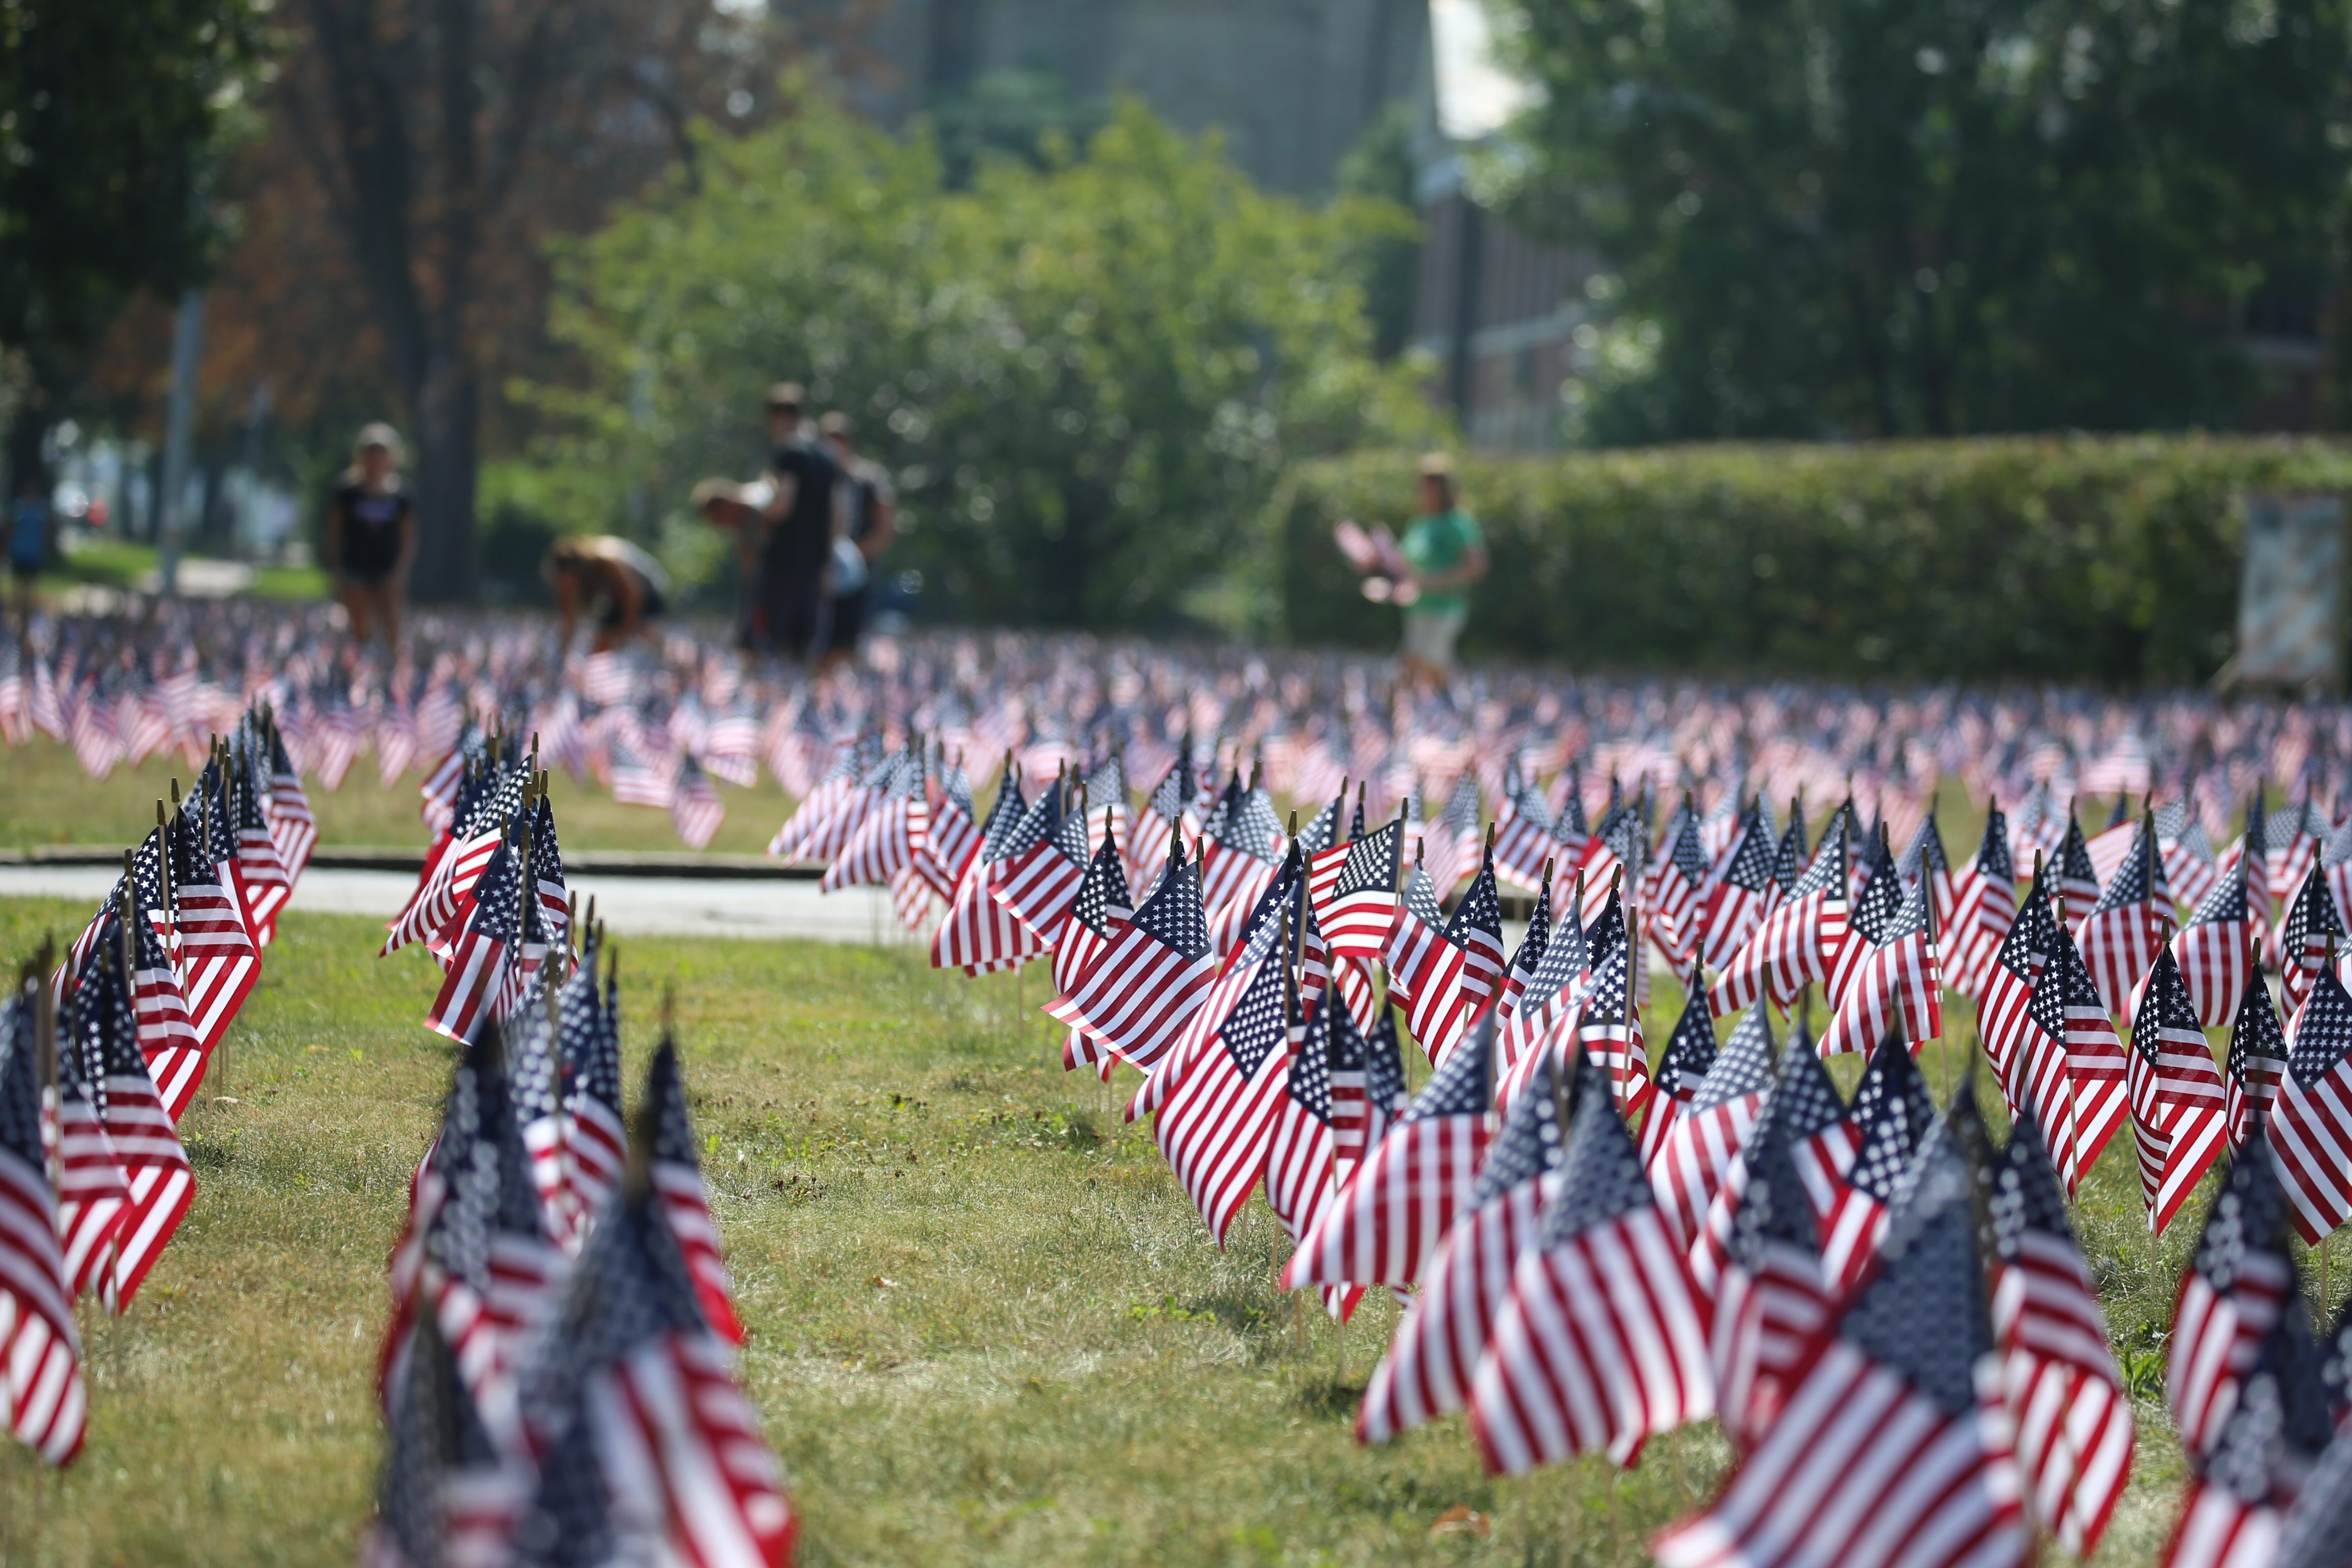 Volunteers from WNY Families of Sept. 11 placed 3,000 American flags on the lawn of the Buffalo Chapter of the American Red Cross on Delaware Avenue in honor of the victims of the 9/11 terror attacks. (John Hickey/Buffalo News)